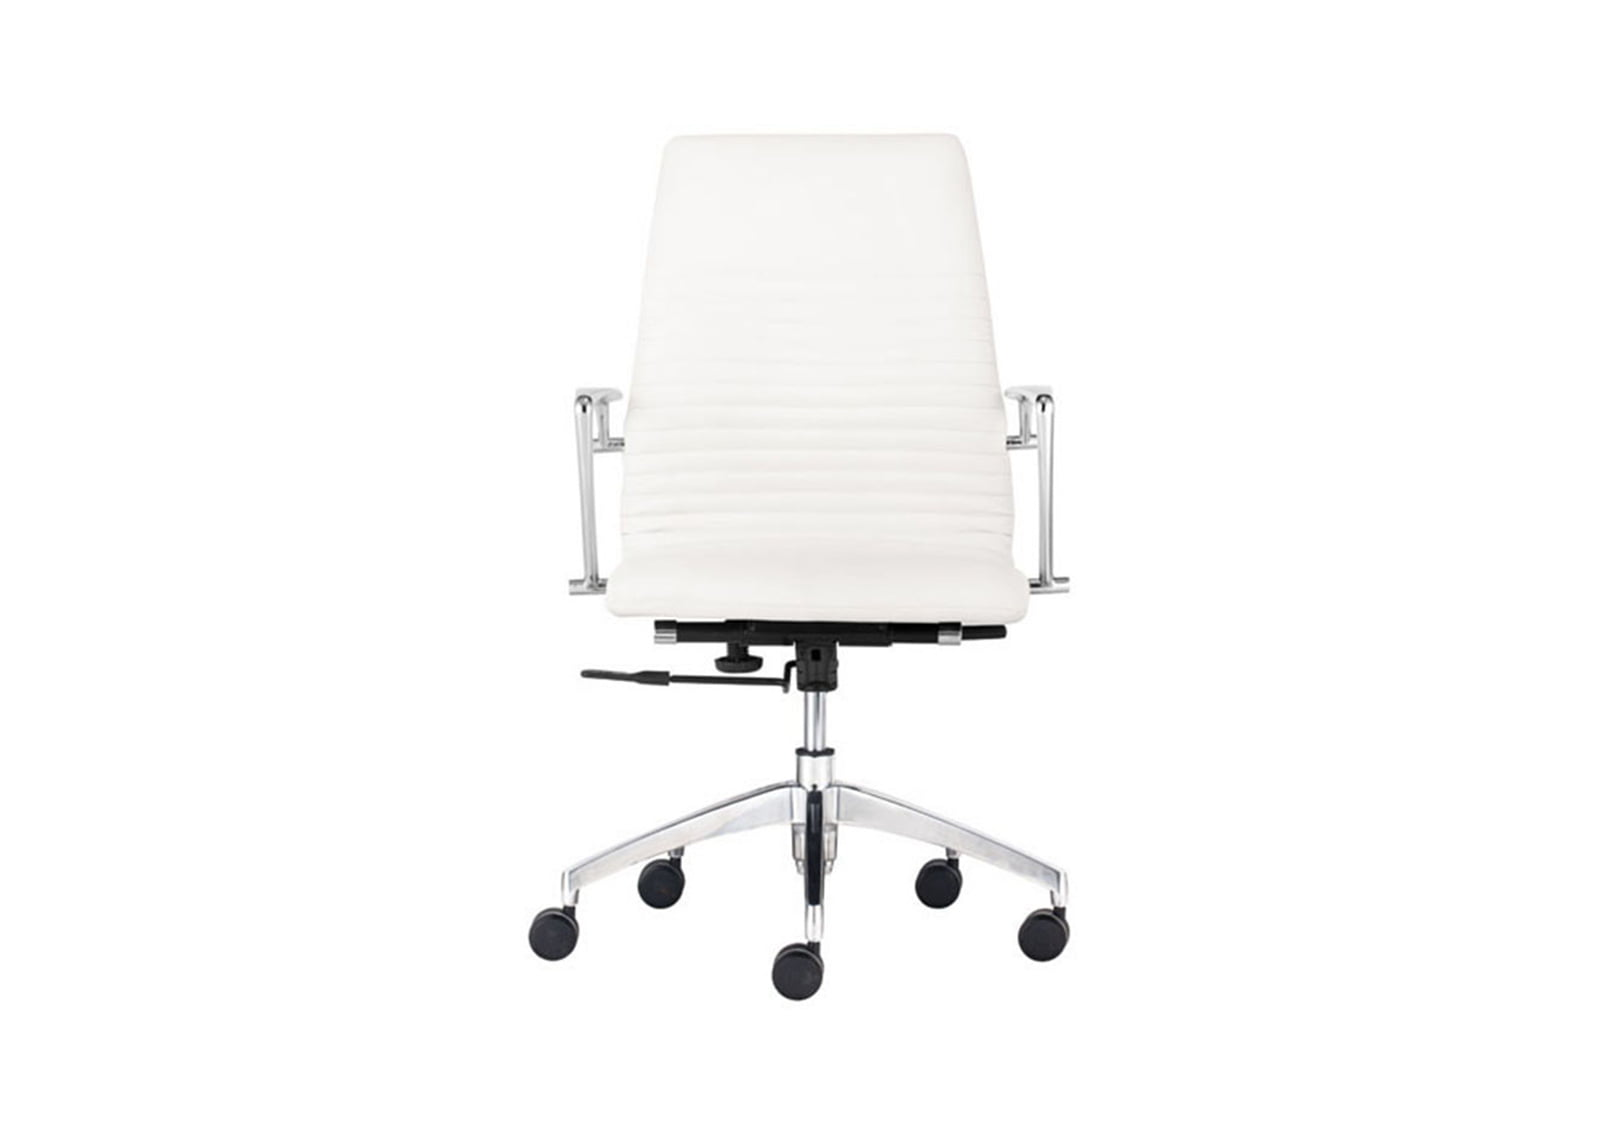 low back office chair your covers inc. sun valley ca 91352 lion white furnishplus